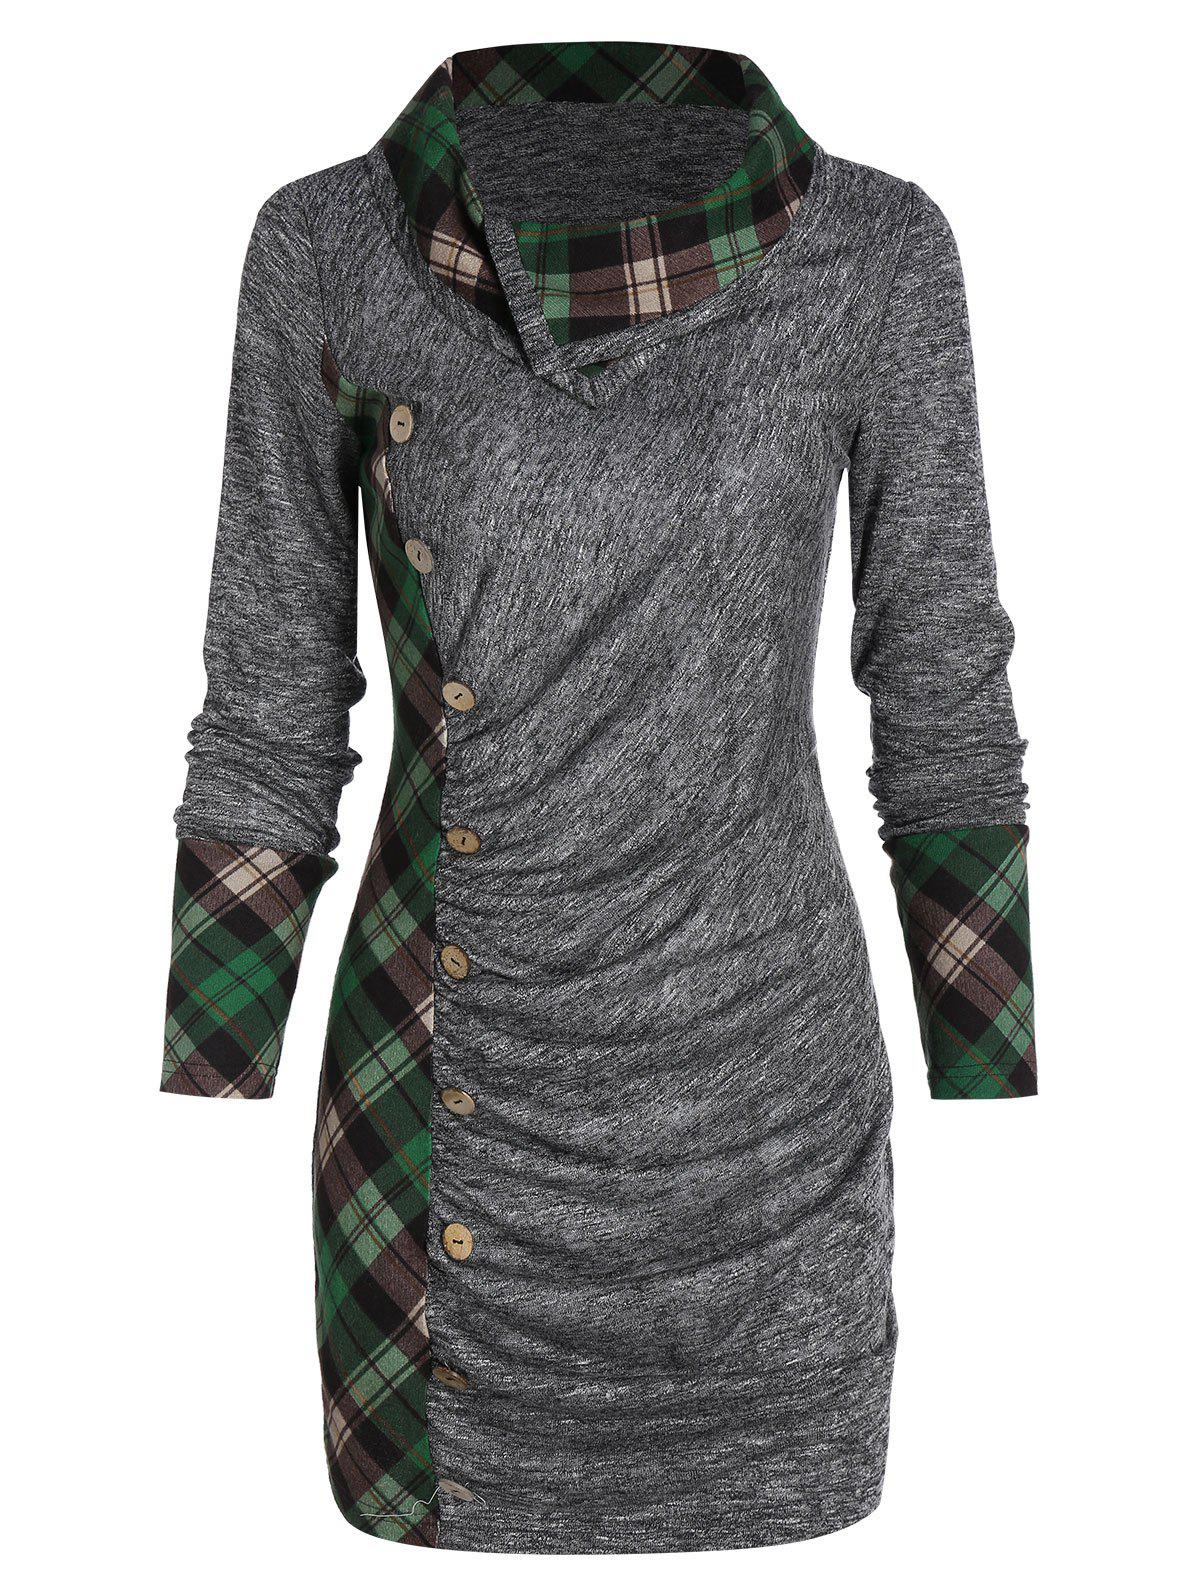 Ruched Plaid Marled T Shirt - GRAY L